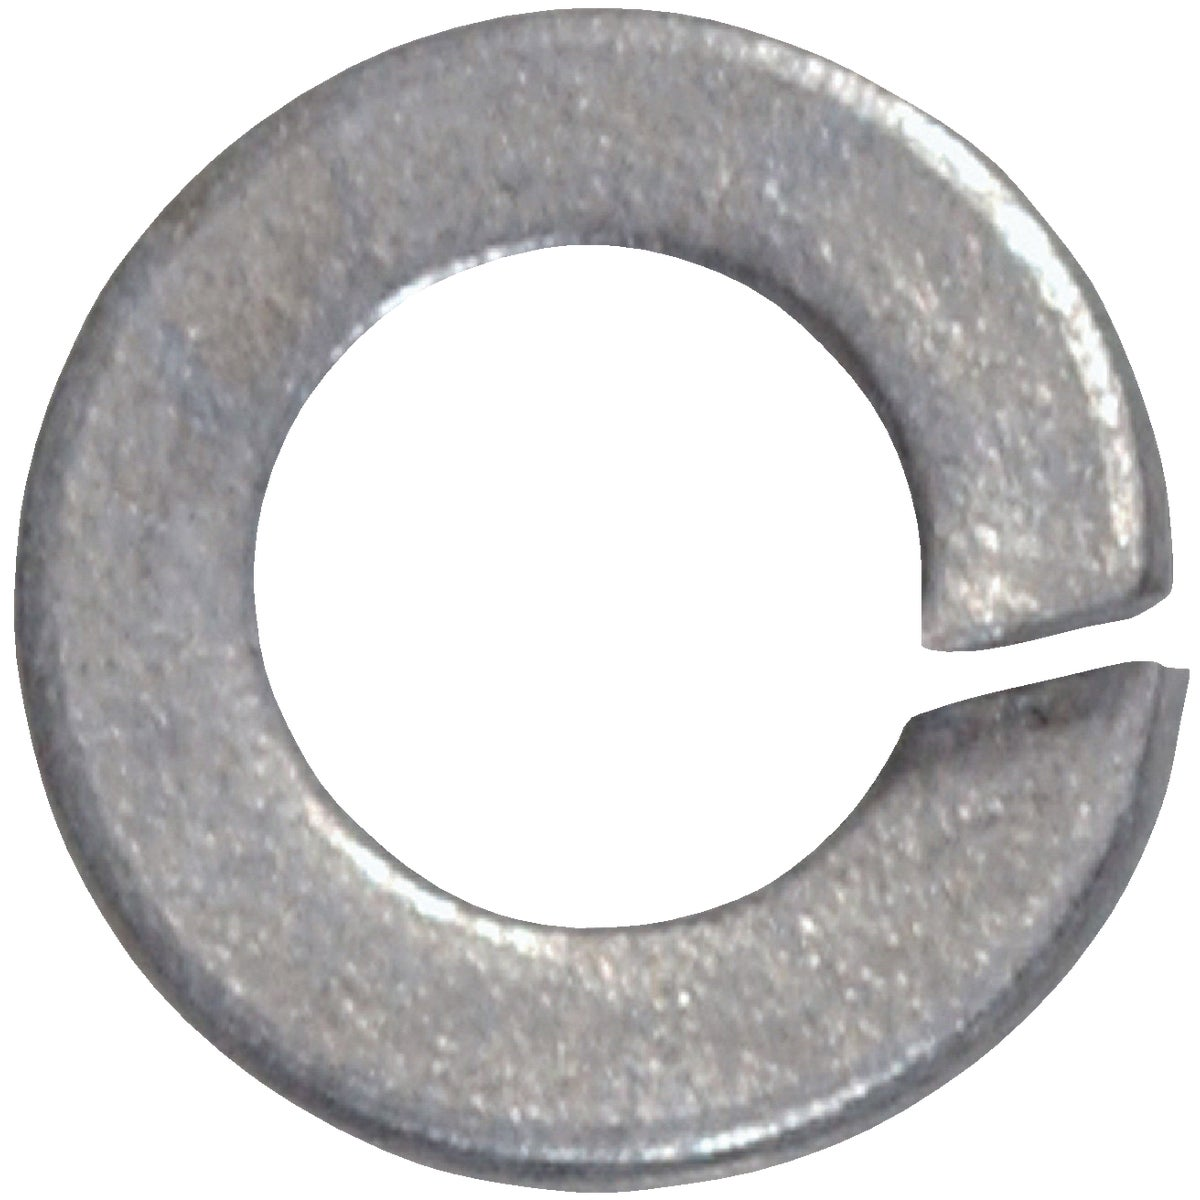 "3/8"" SPLIT LOCK WASHER - 811056 by Hillman Fastener"